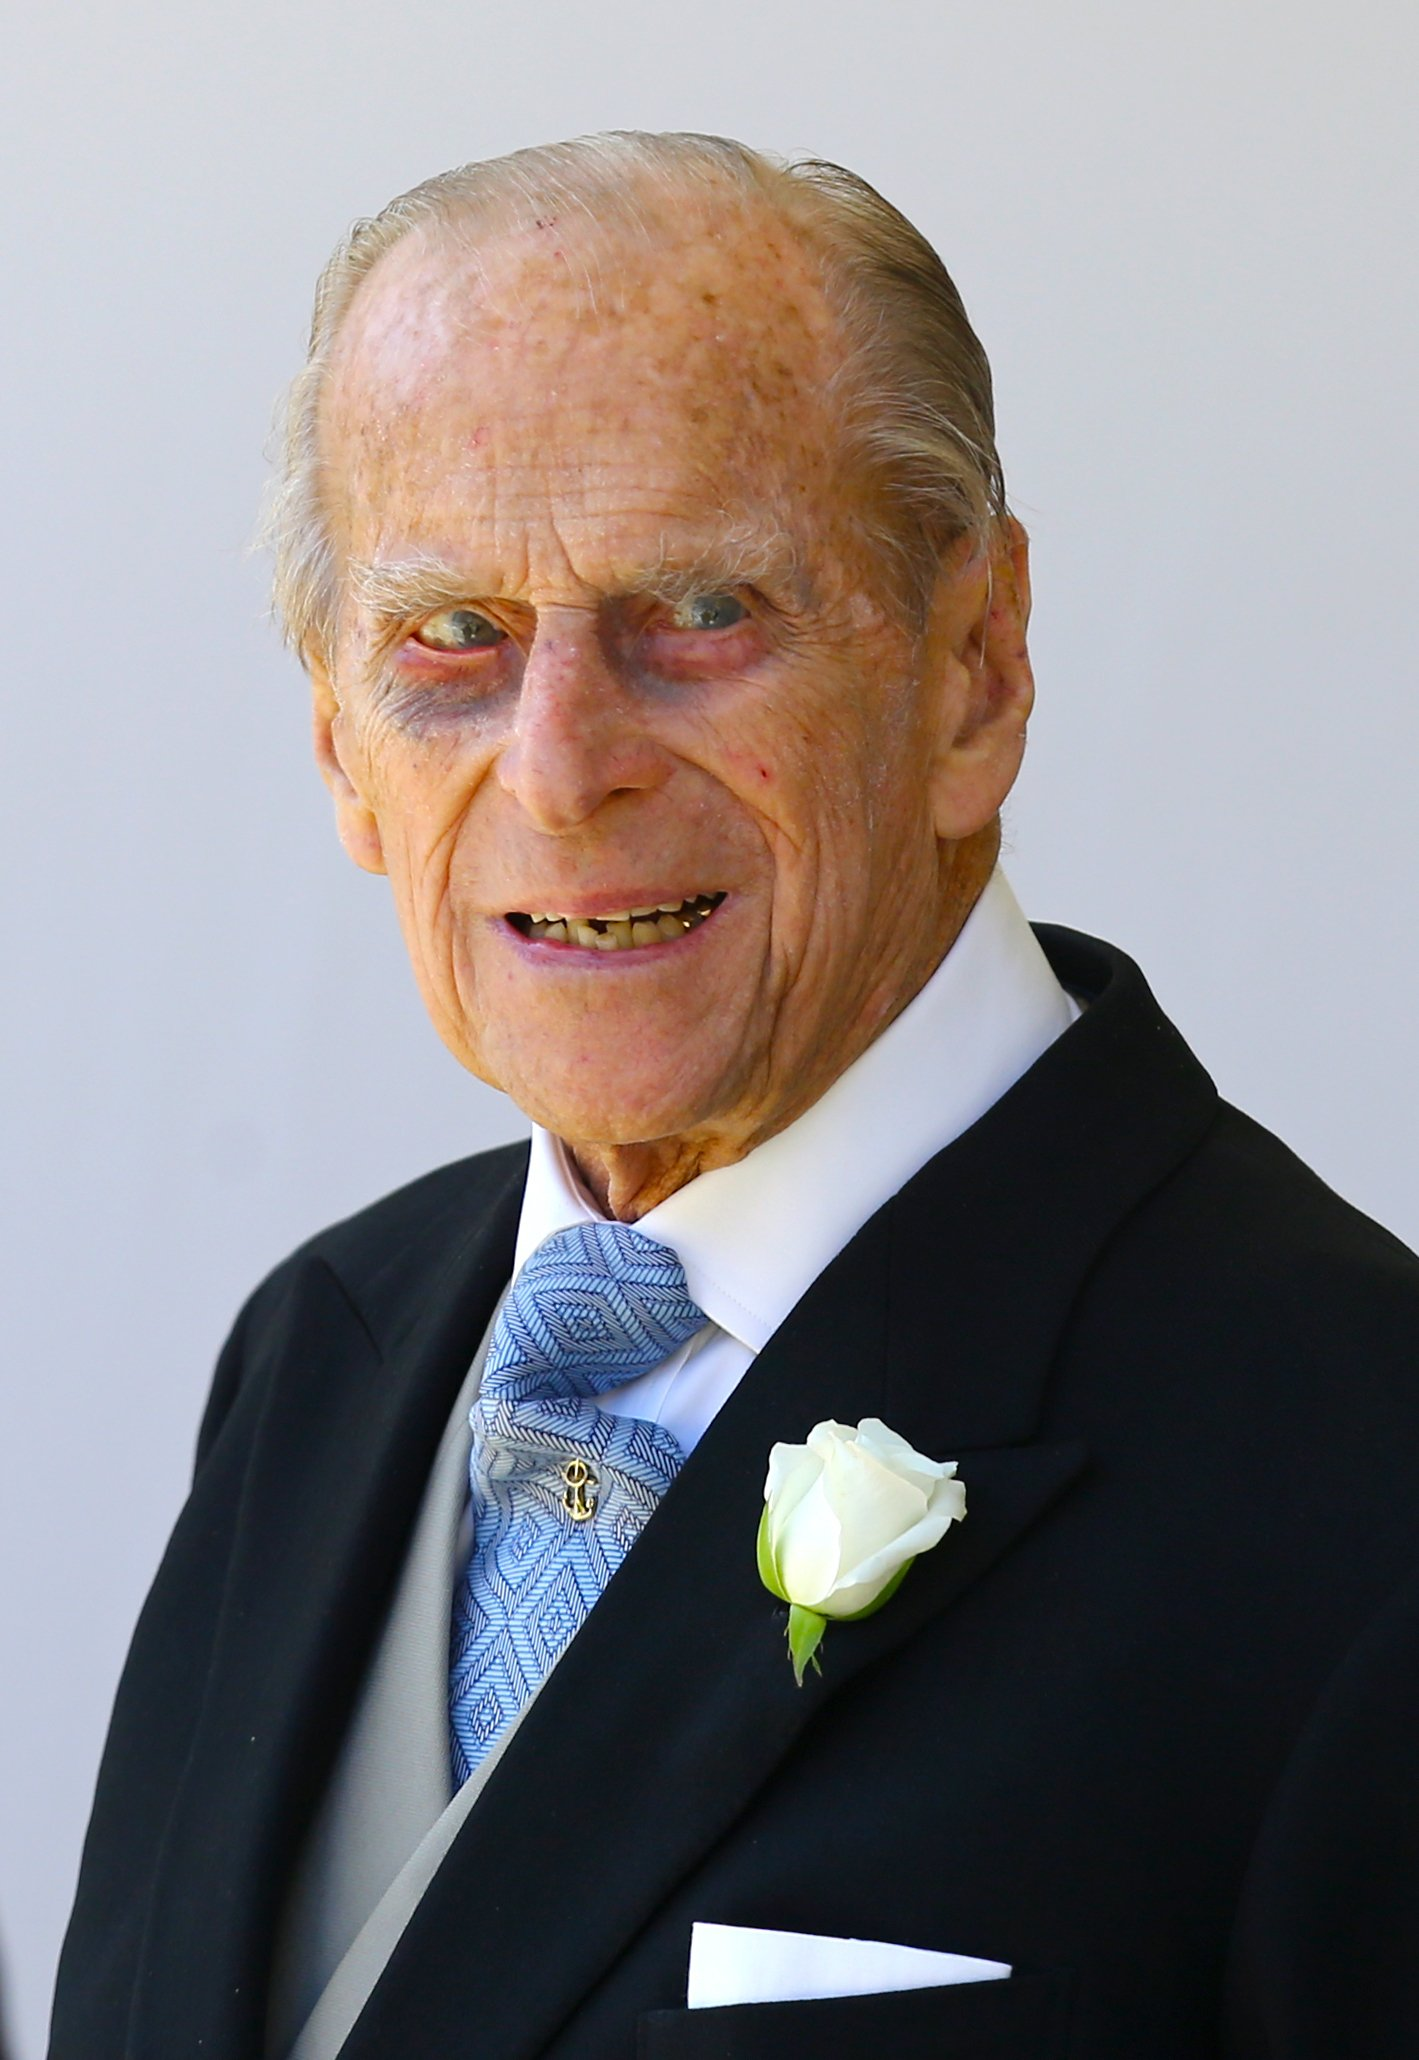 Prince Philip, Duke of Edinburgh leaves St George's Chapel at Windsor Castle after the wedding of Prince Harry to Meghan Markle on May 19, 2018, in Windsor, England. | Source: Getty Images.